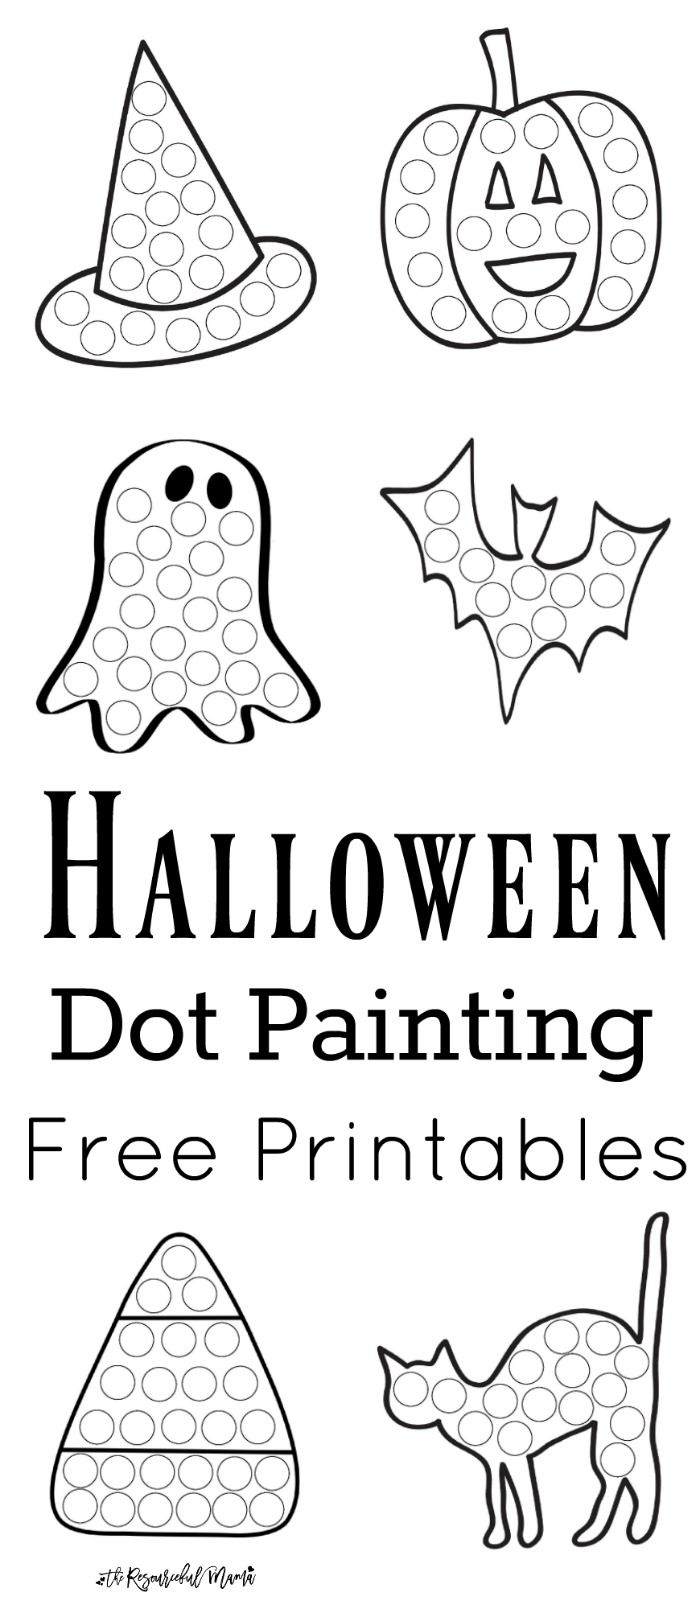 Halloween Dot Painting Free Printables Painting